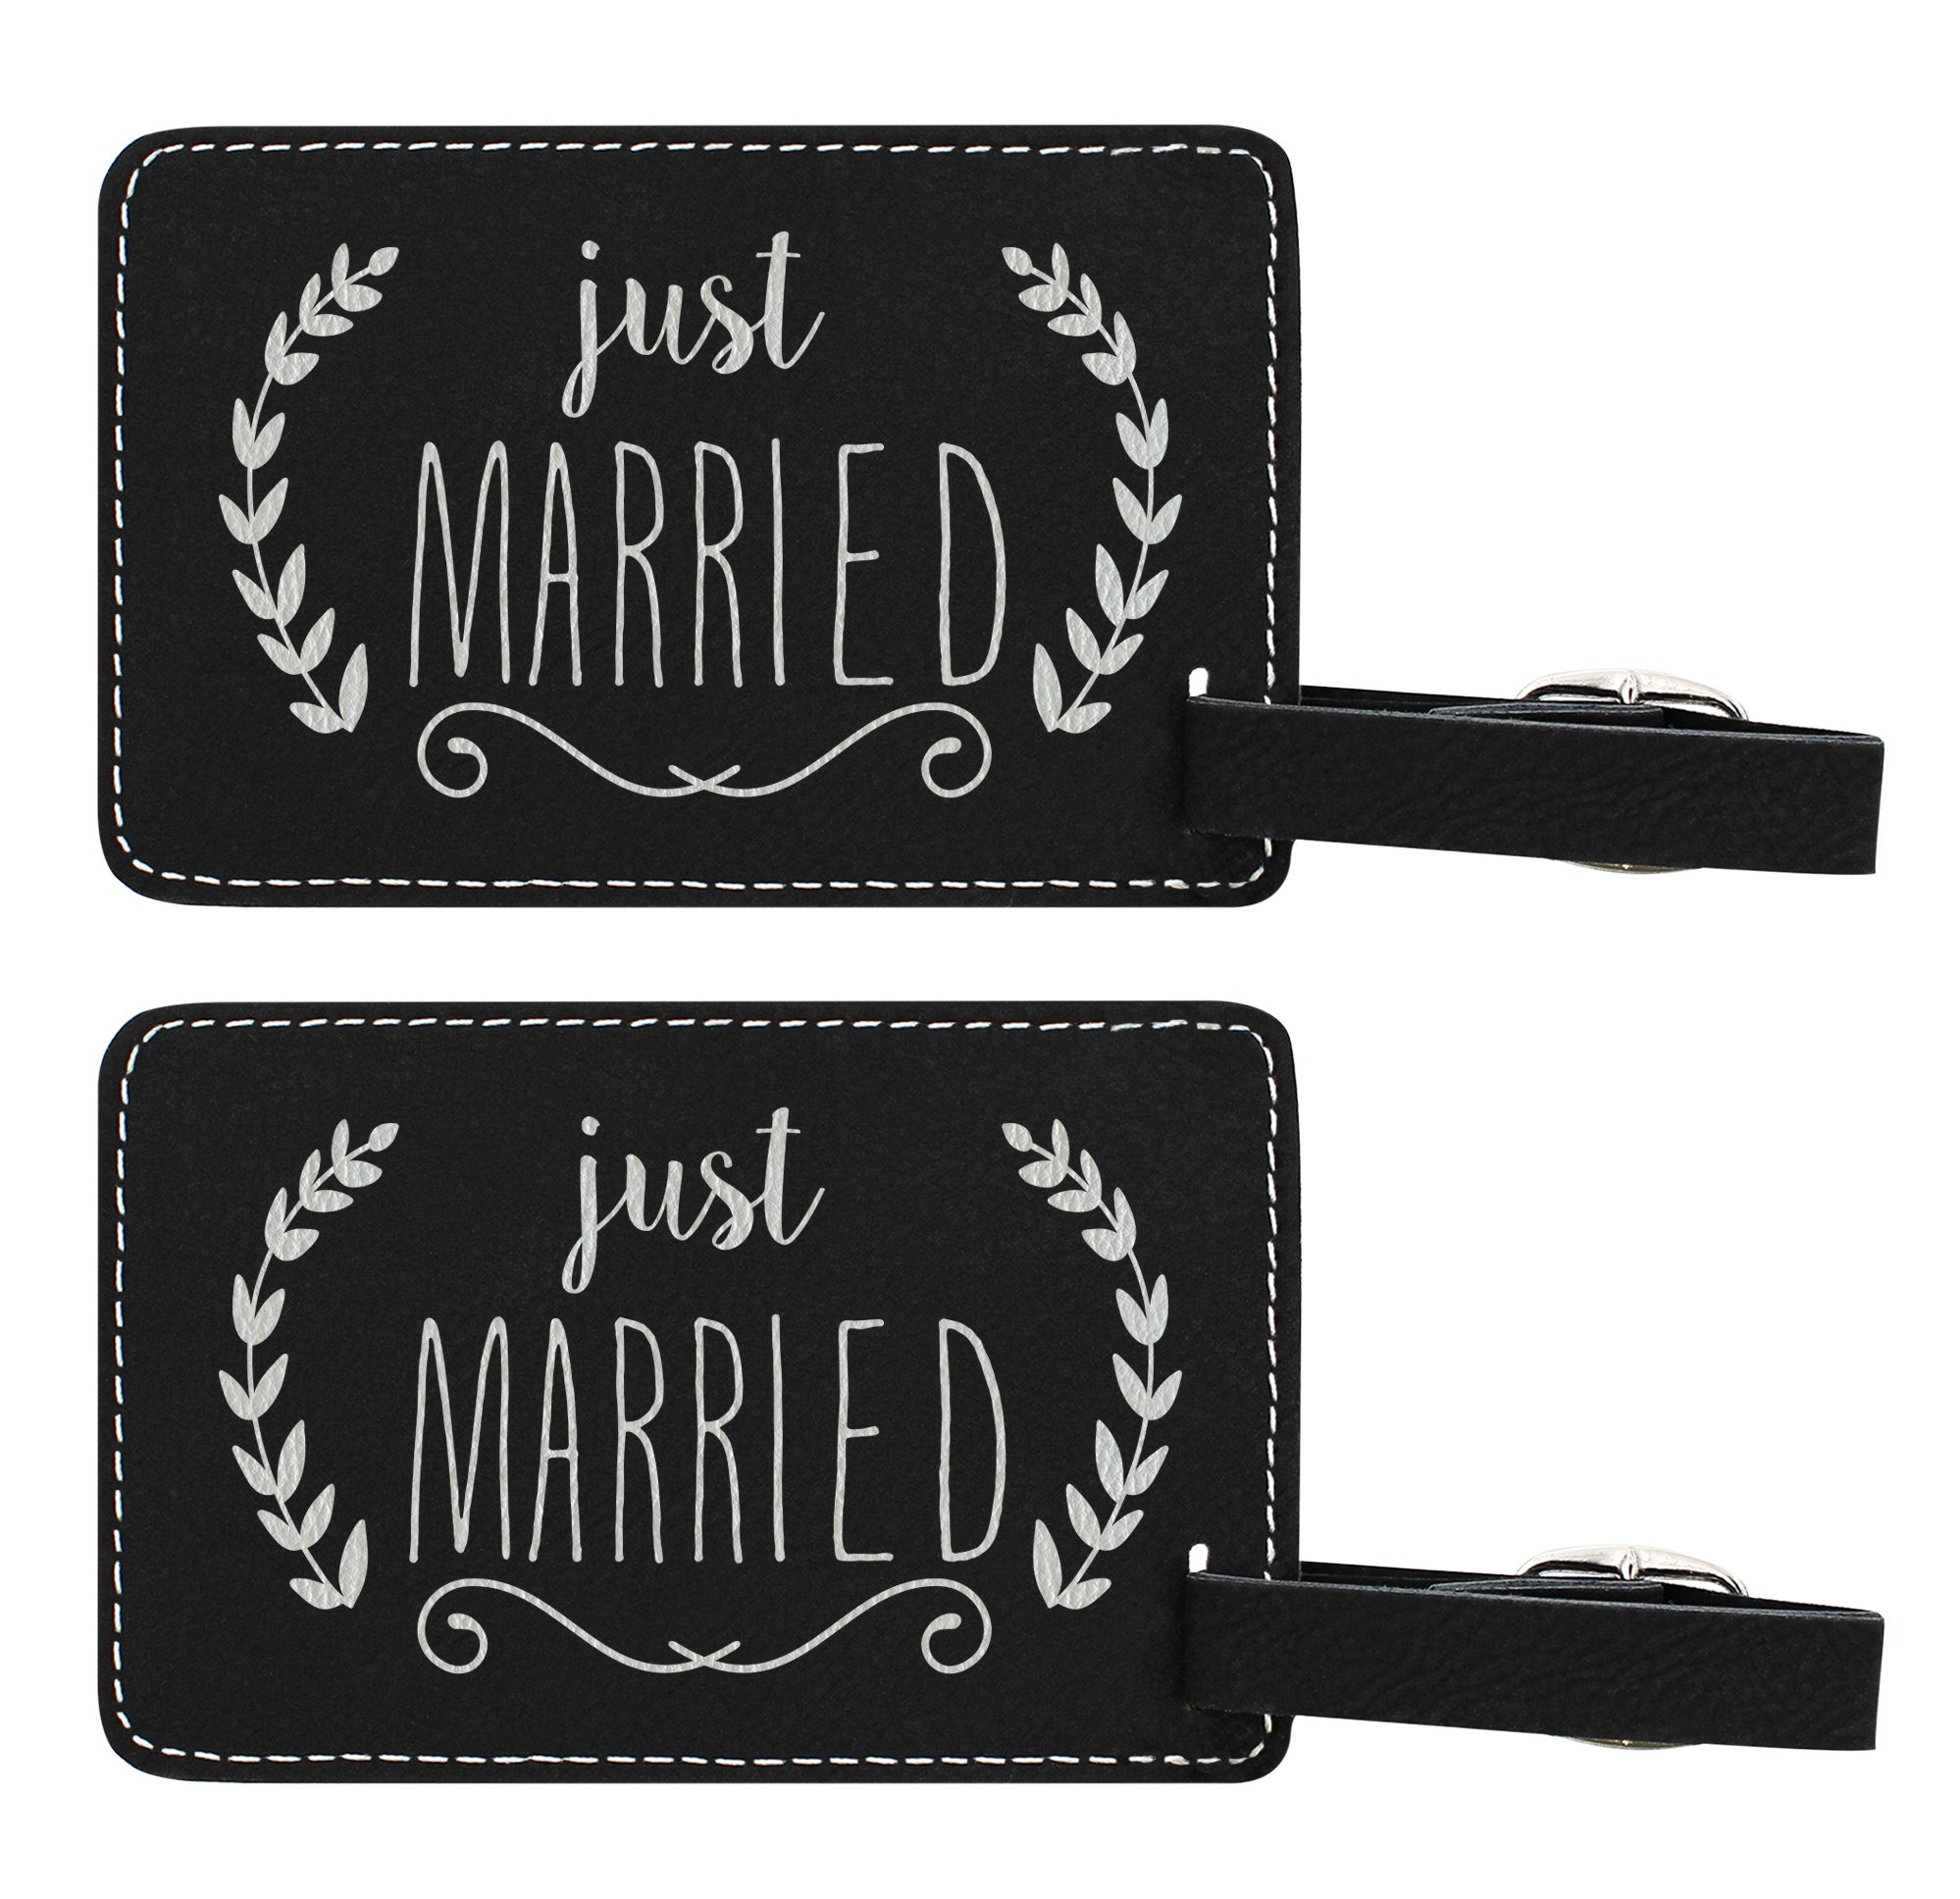 Wedding Gifts Just Married Couples Luggage Tags Couples Gifts for Newlyweds Husband & Wife Gifts 2-pack Laser Engraved Leather Luggage Tags Black